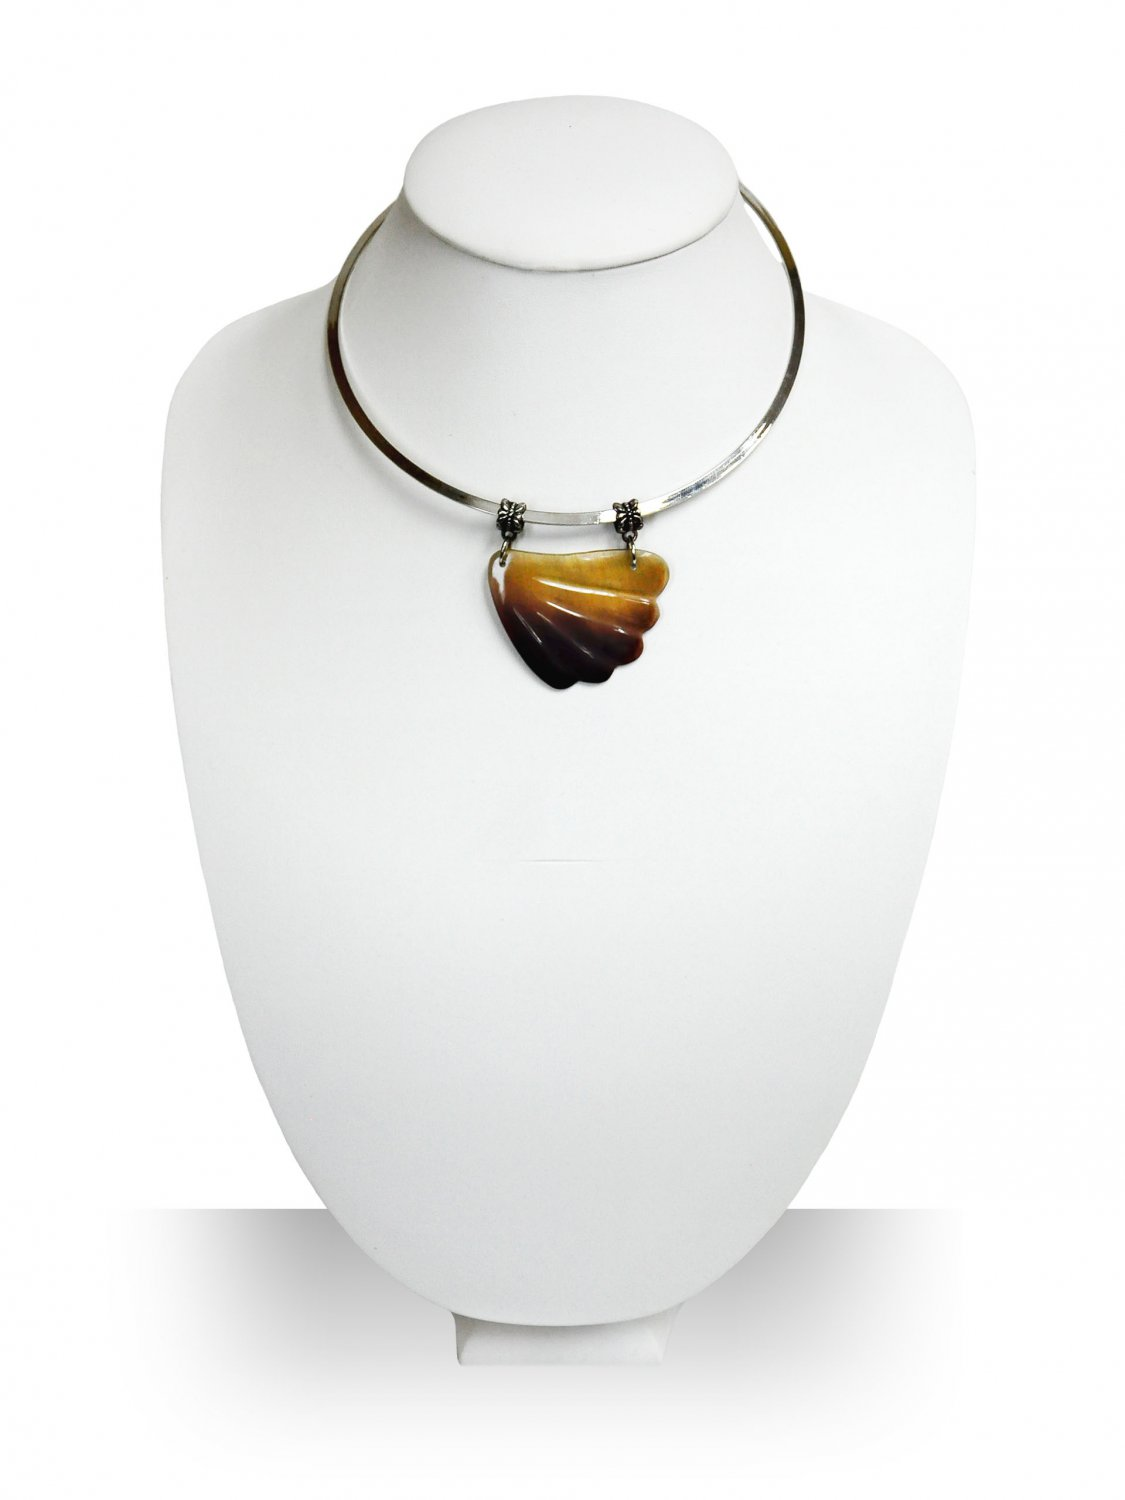 Handmade Natural Sea Shell Pendant with Stainless Steel Choker